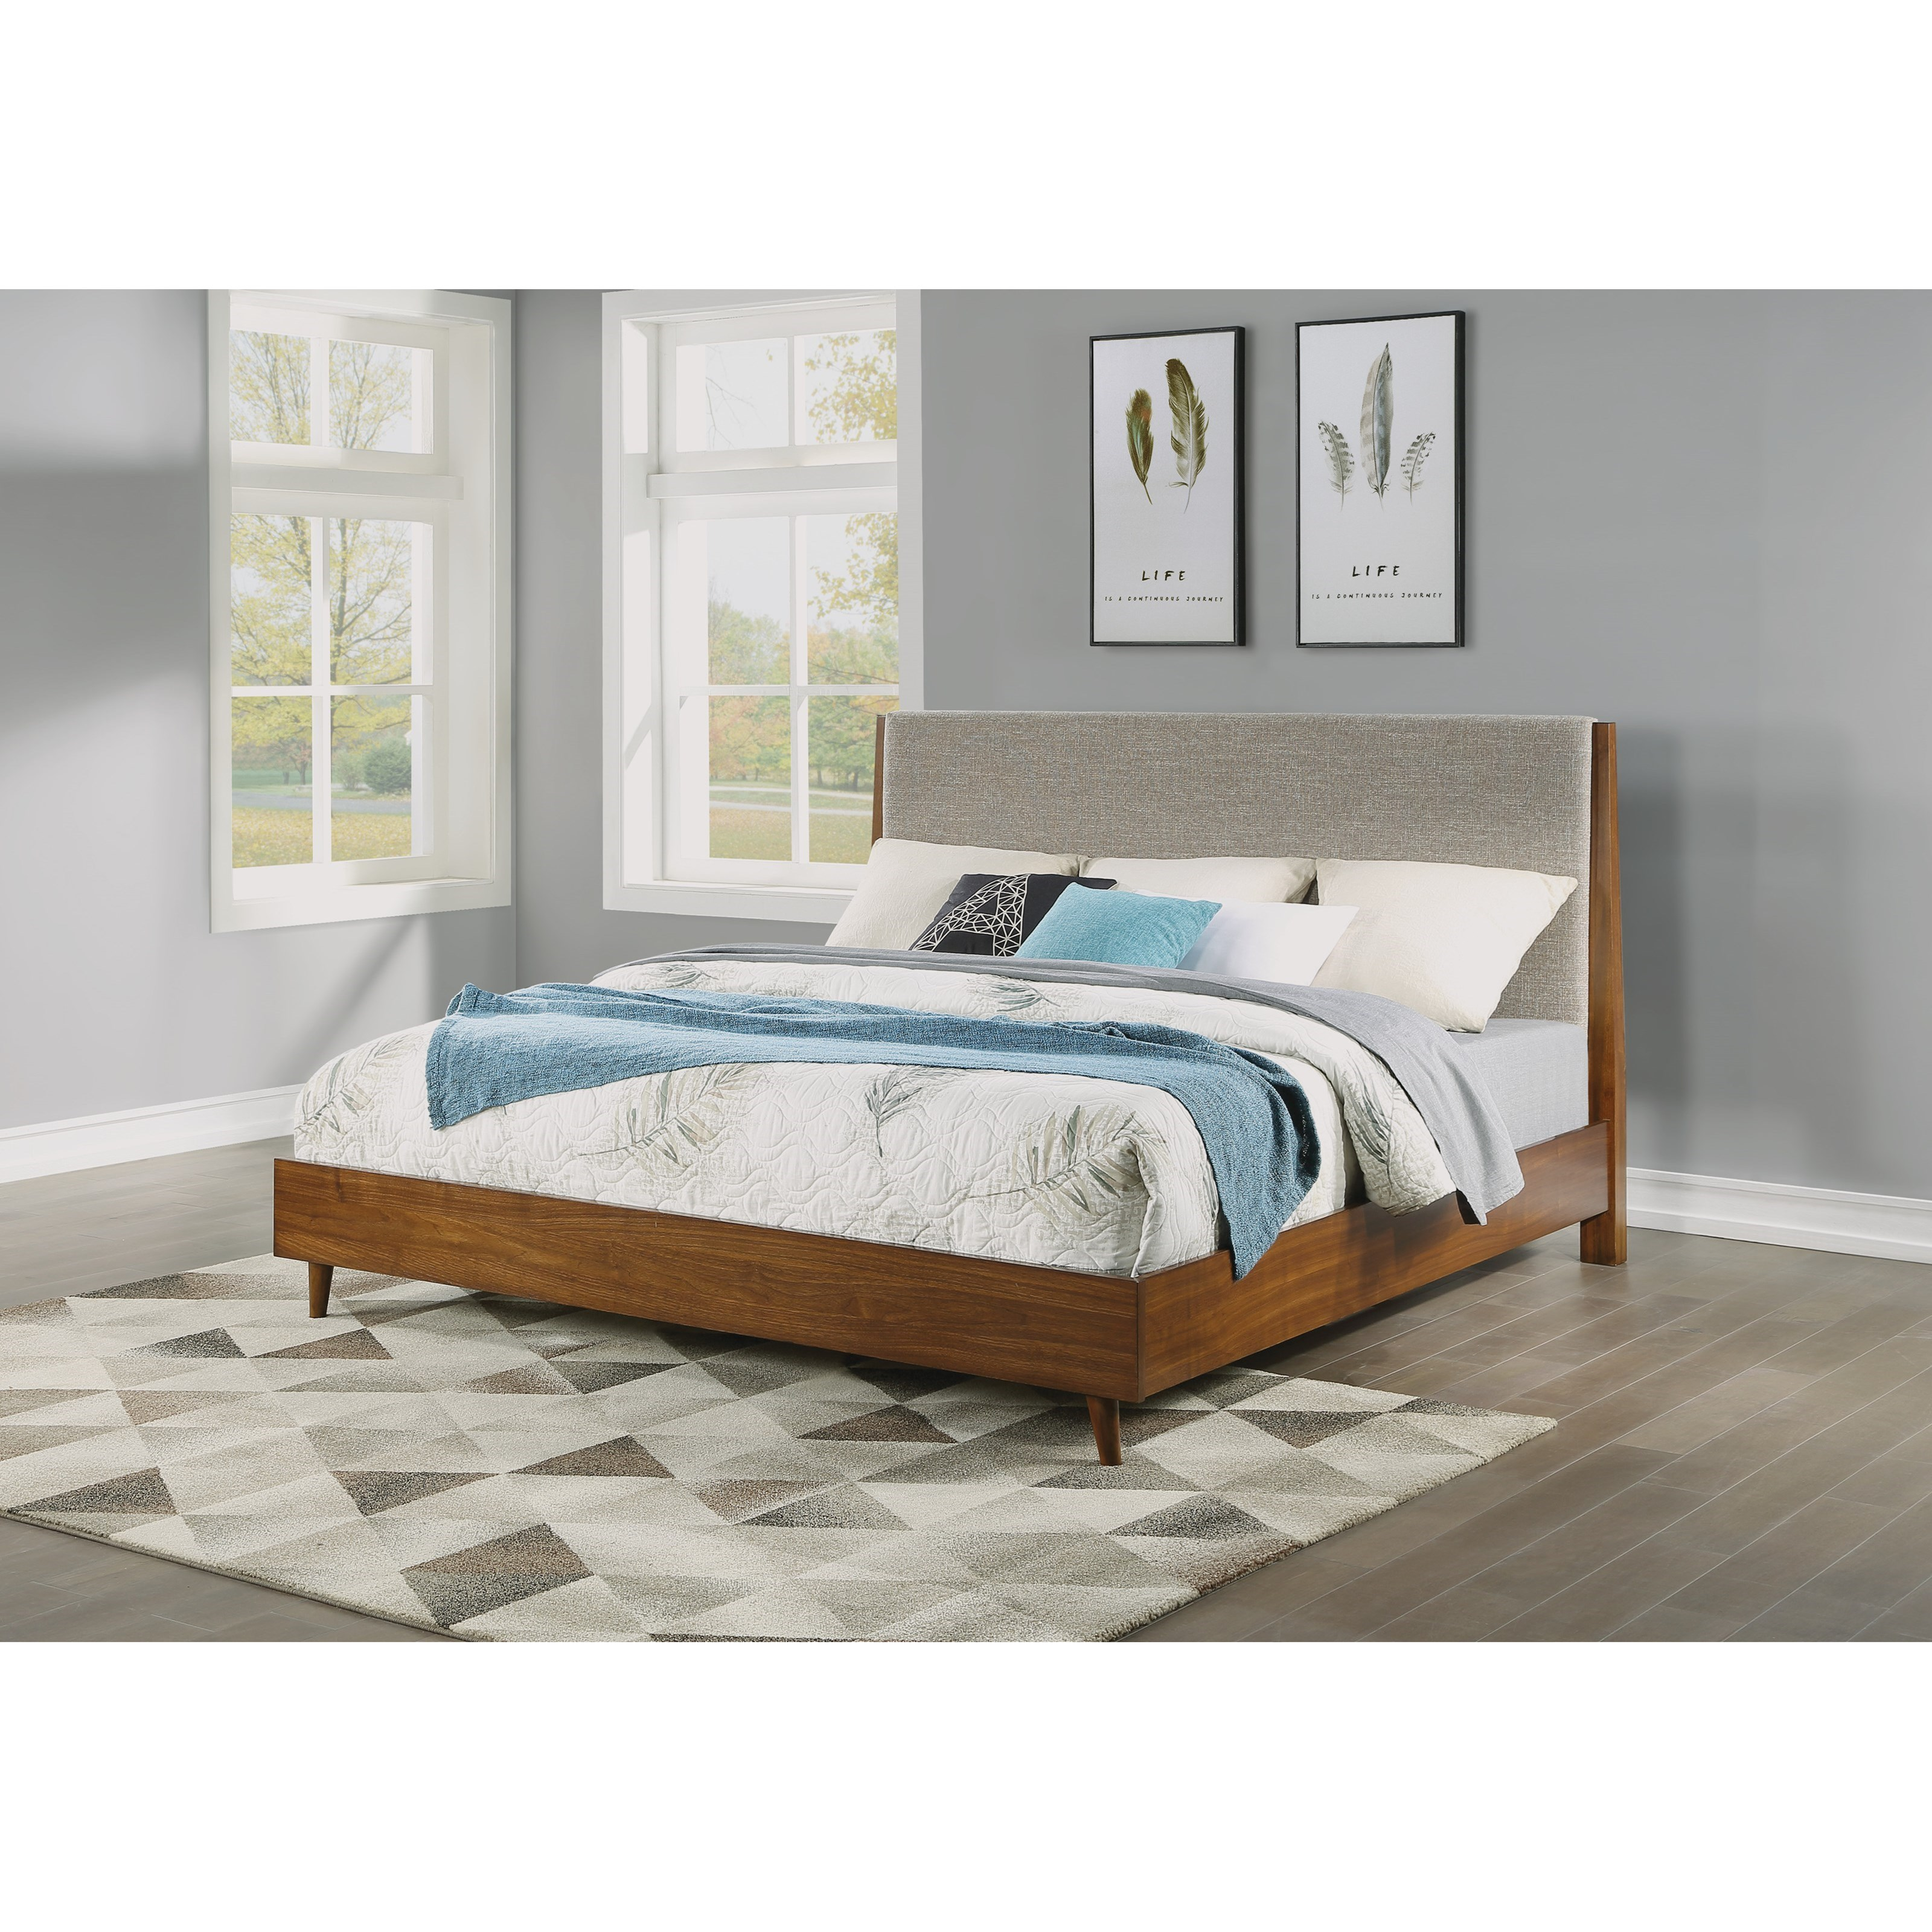 Ludwig California King Upholstered Bed by Flexsteel Wynwood Collection at Northeast Factory Direct